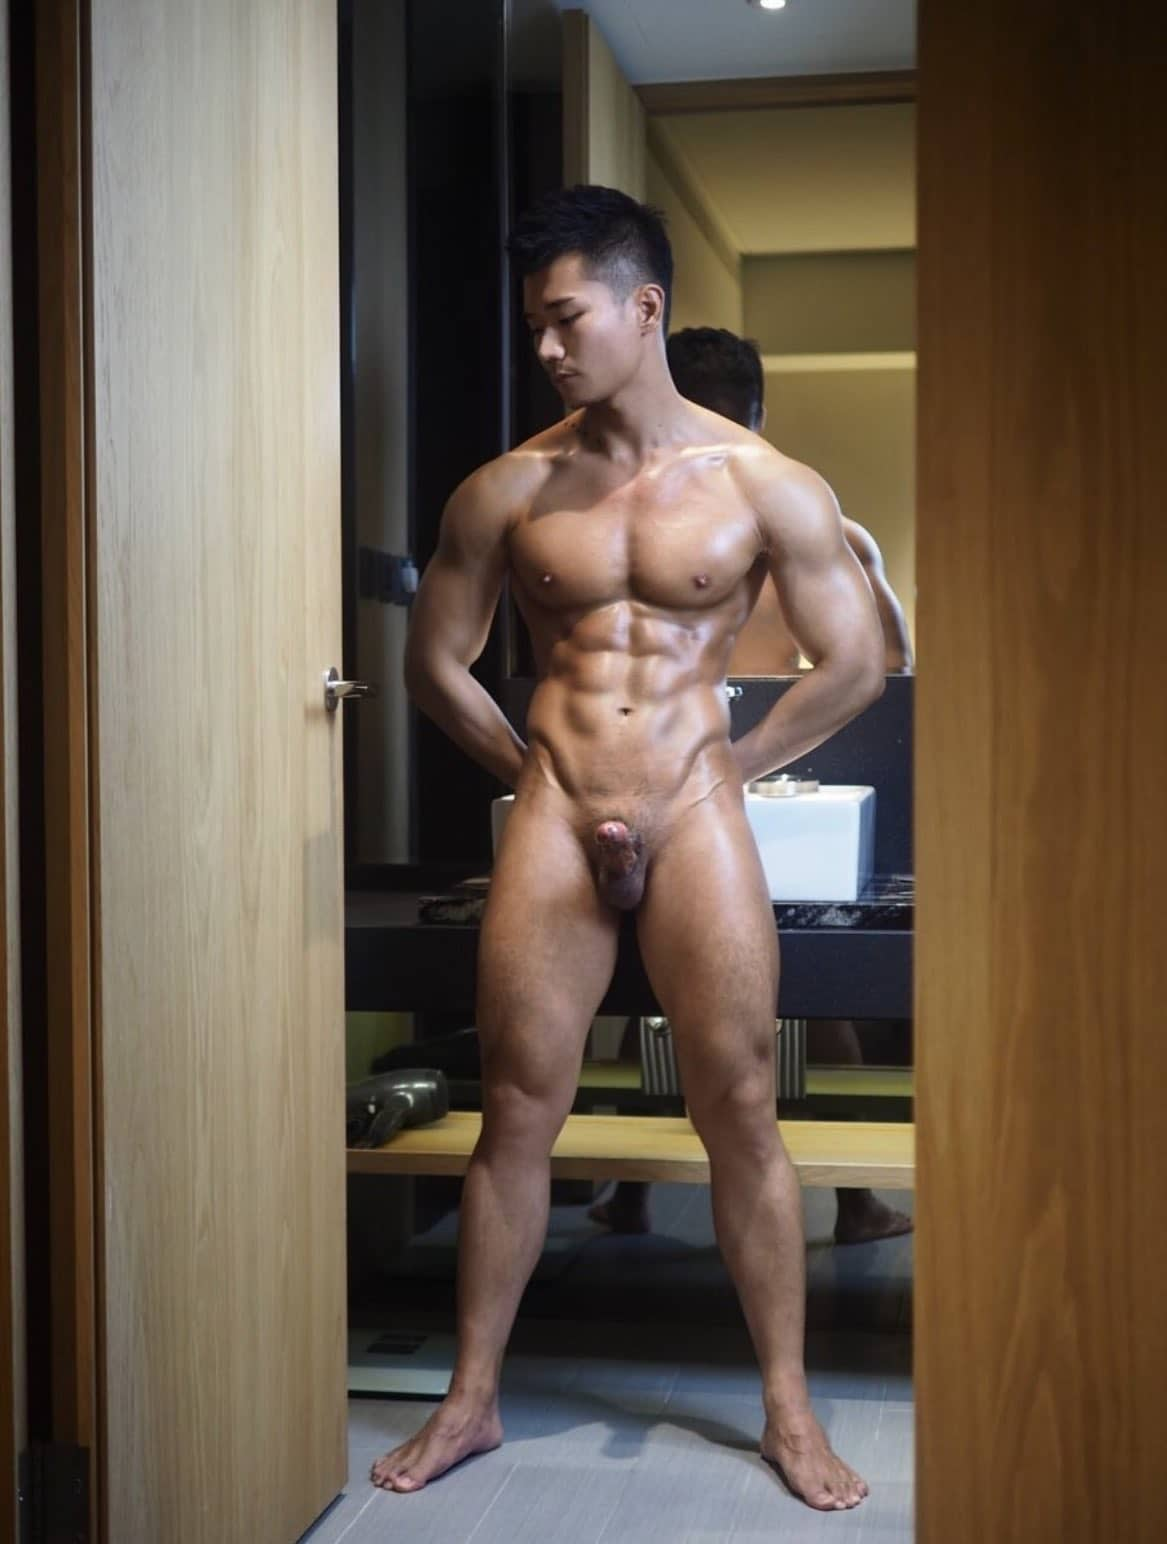 Muscular body and hard cock